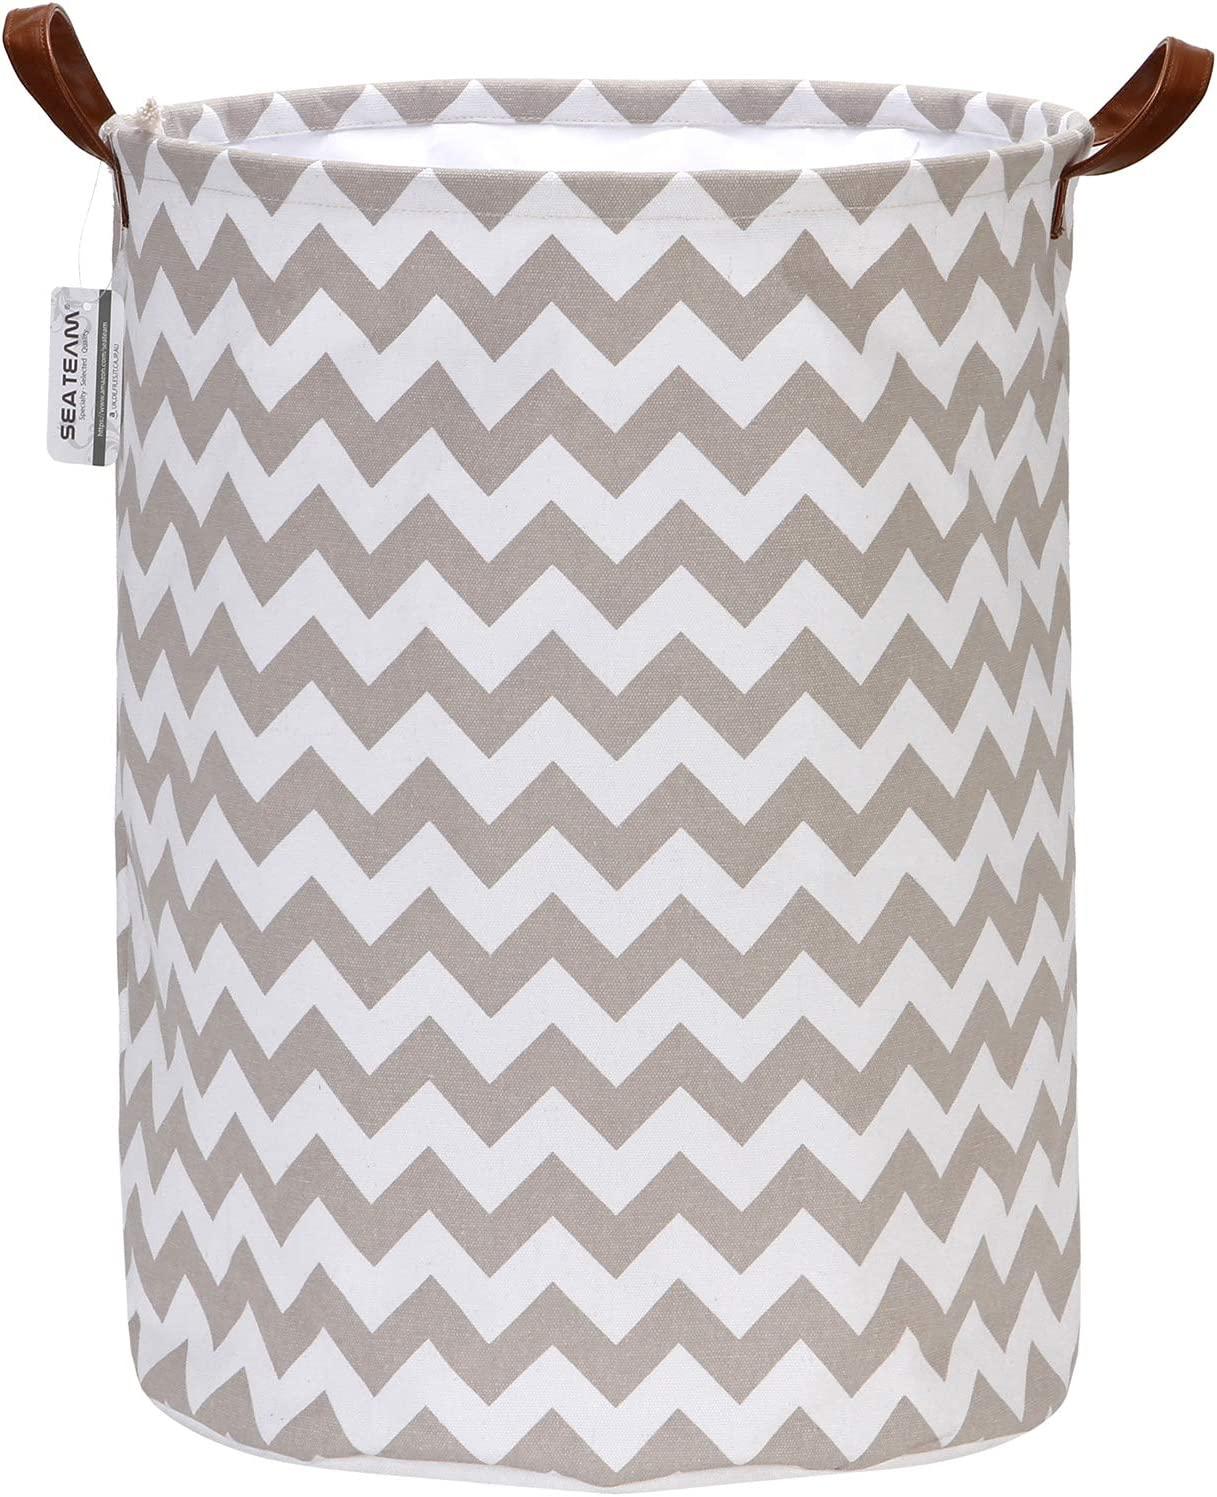 Sea Team Chevron Pattern Laundry Hamper Canvas Fabric Laundry Basket Collapsible Storage Bin with PU Leather Handles and Drawstring Closure, 19.7 by 15.7 inches, Waterproof Inner, Grey